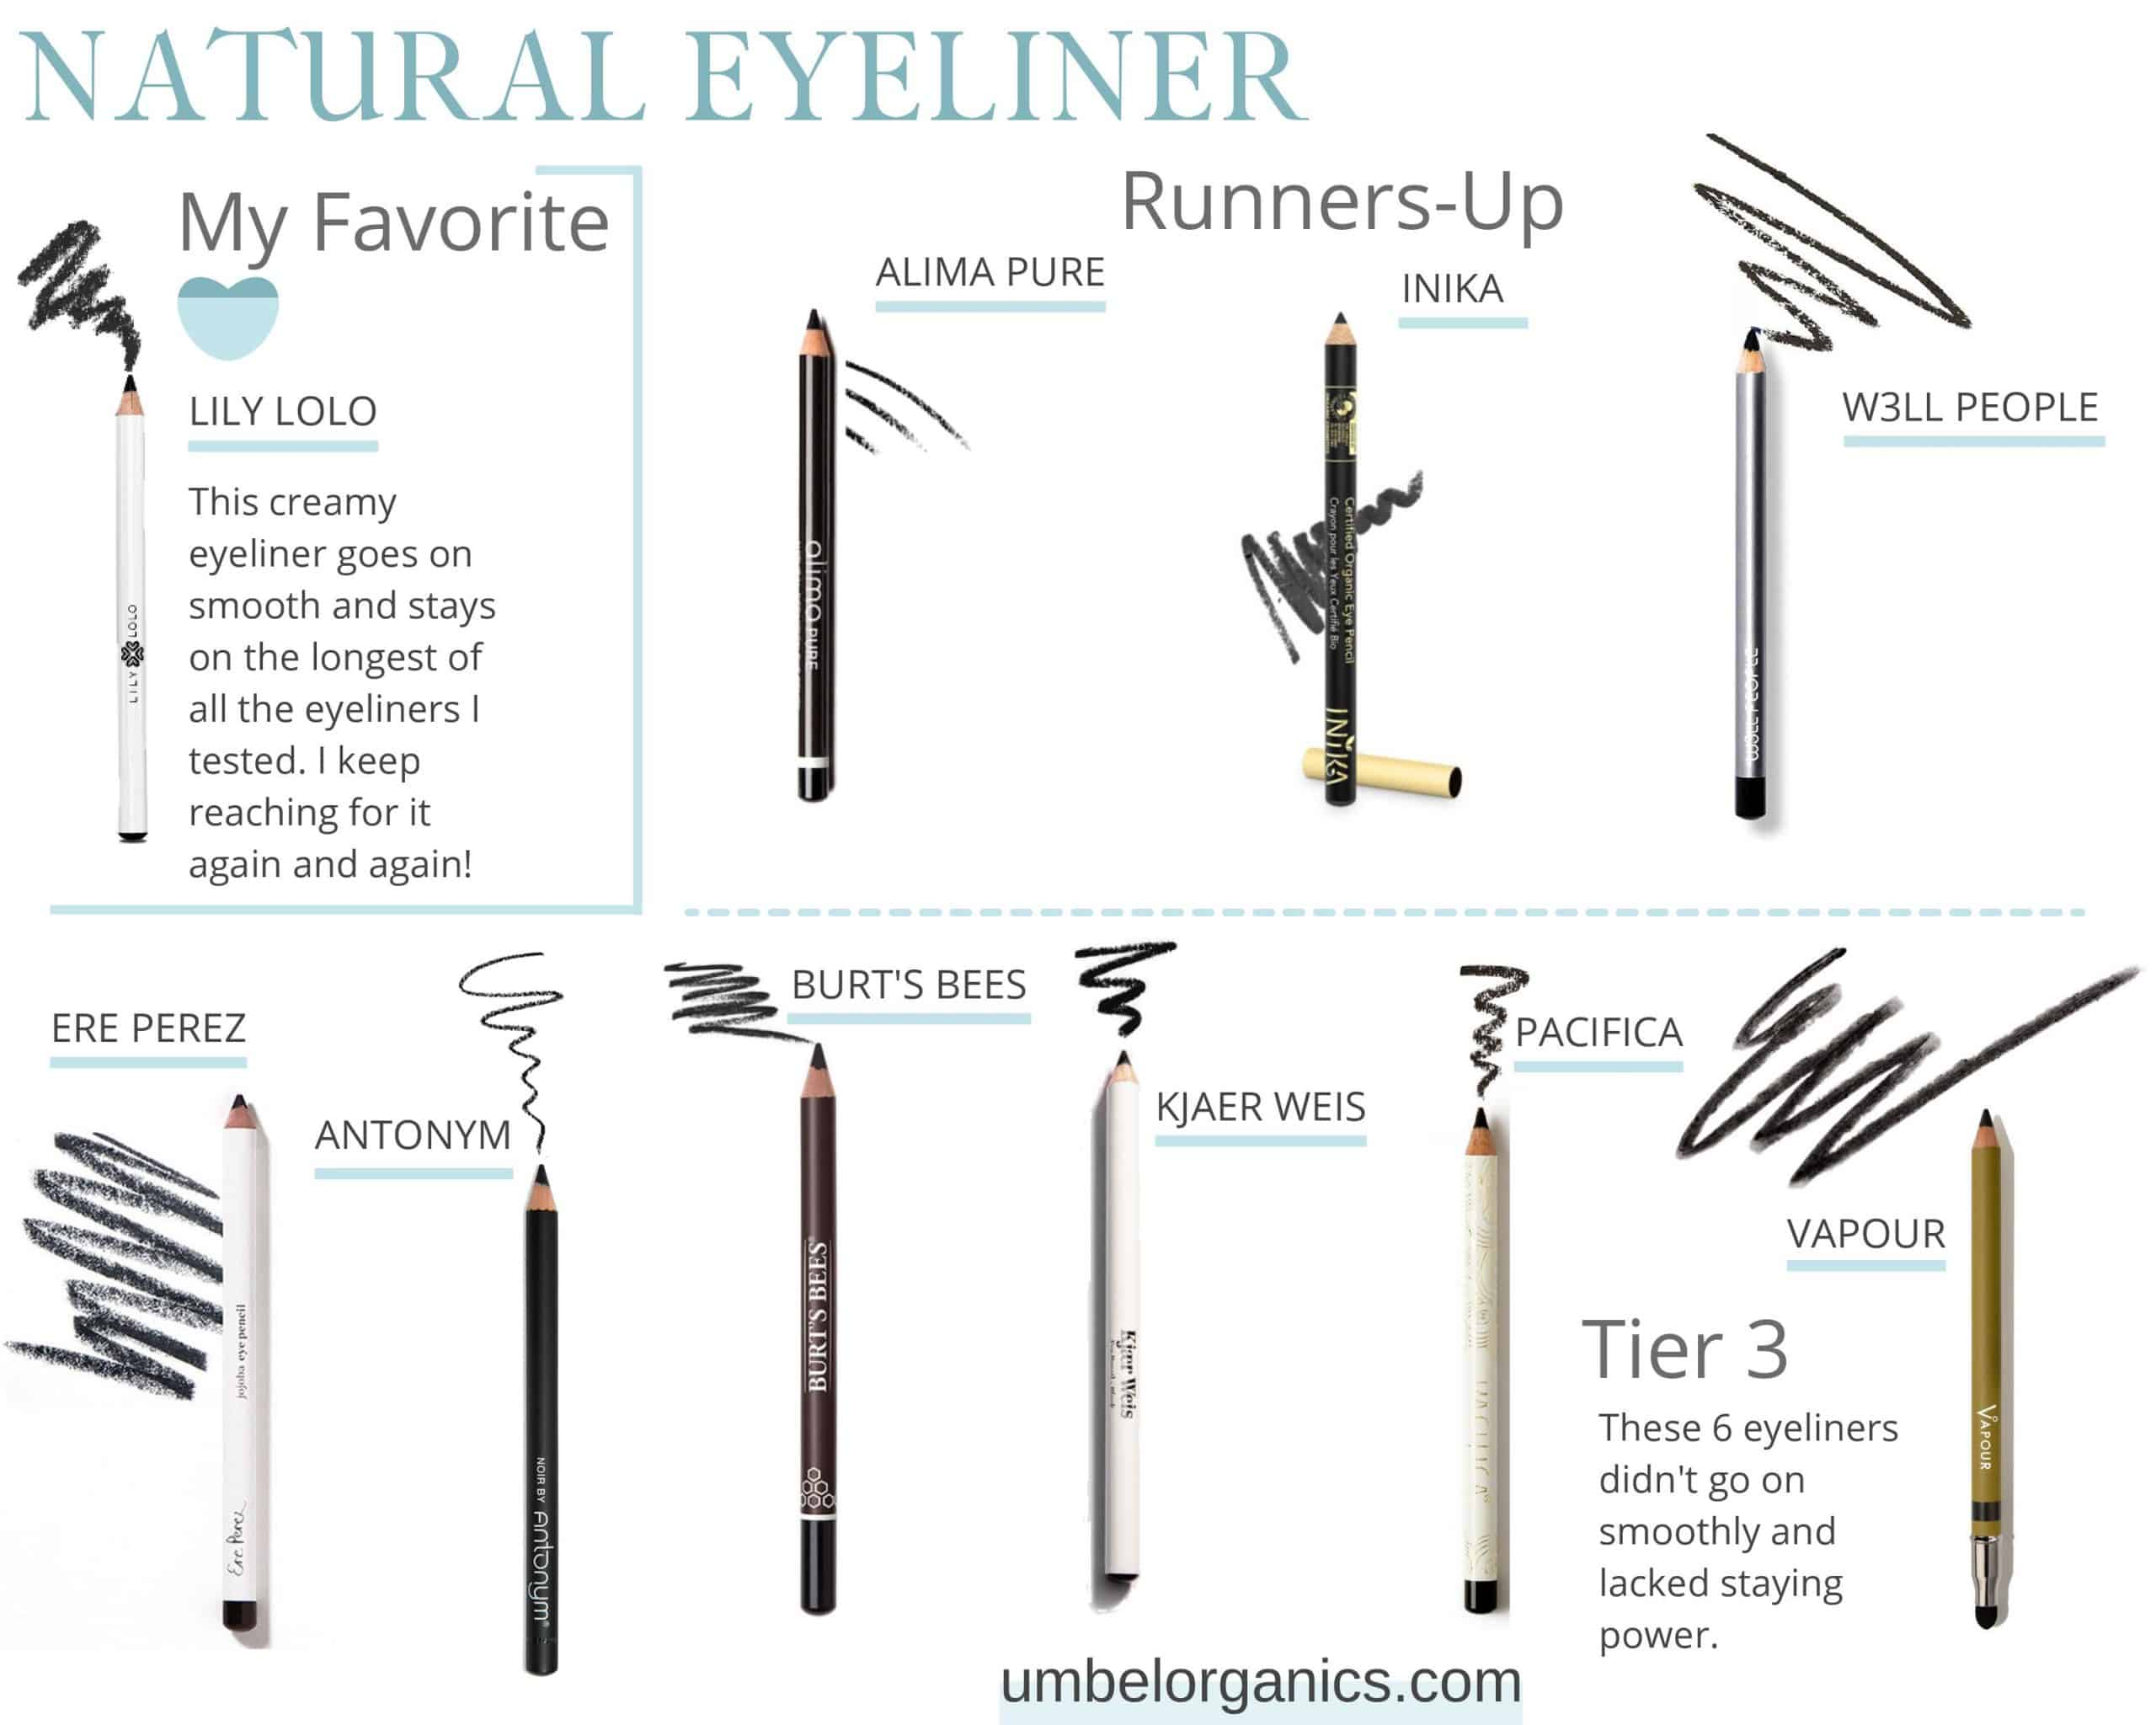 My favorite natural eyeliner plus the runners-up